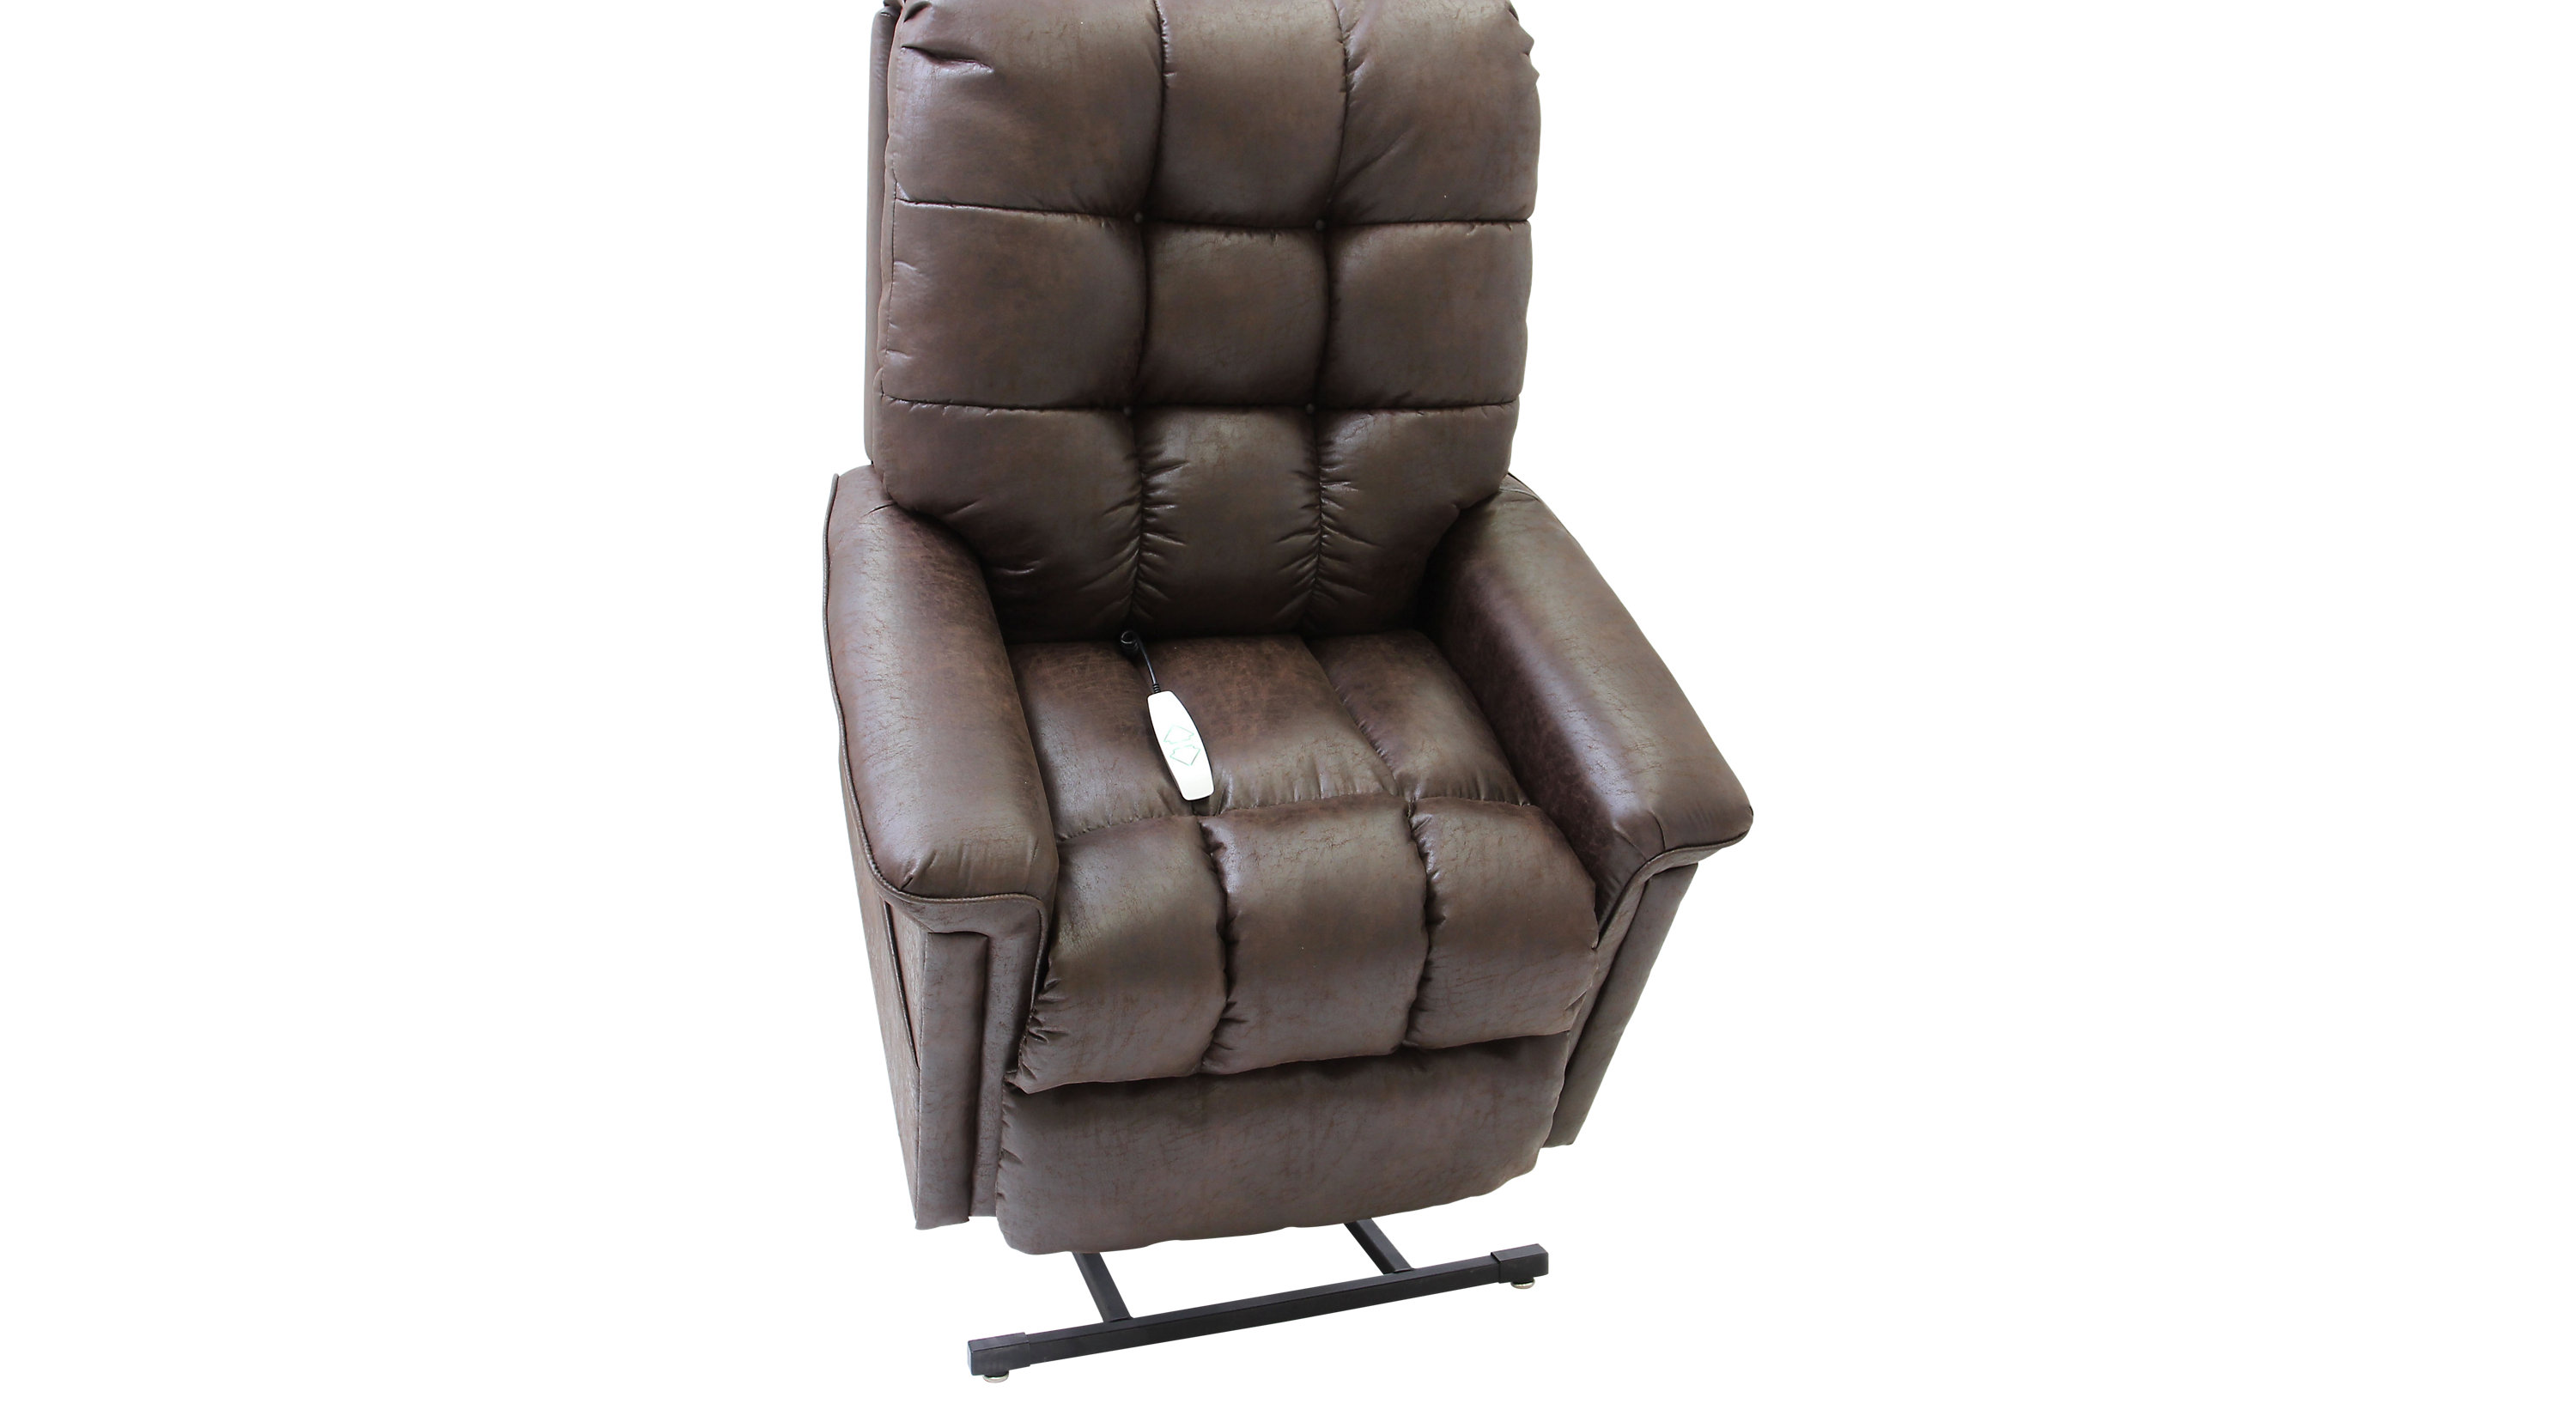 in house impressive to recliners lifts installation power cost accessories cool medical size rental your full img troutman lift applied picture equipment prices medicare recliner covered reviews video chair repair home chairs of sale for nc stair stairlft idea decor new